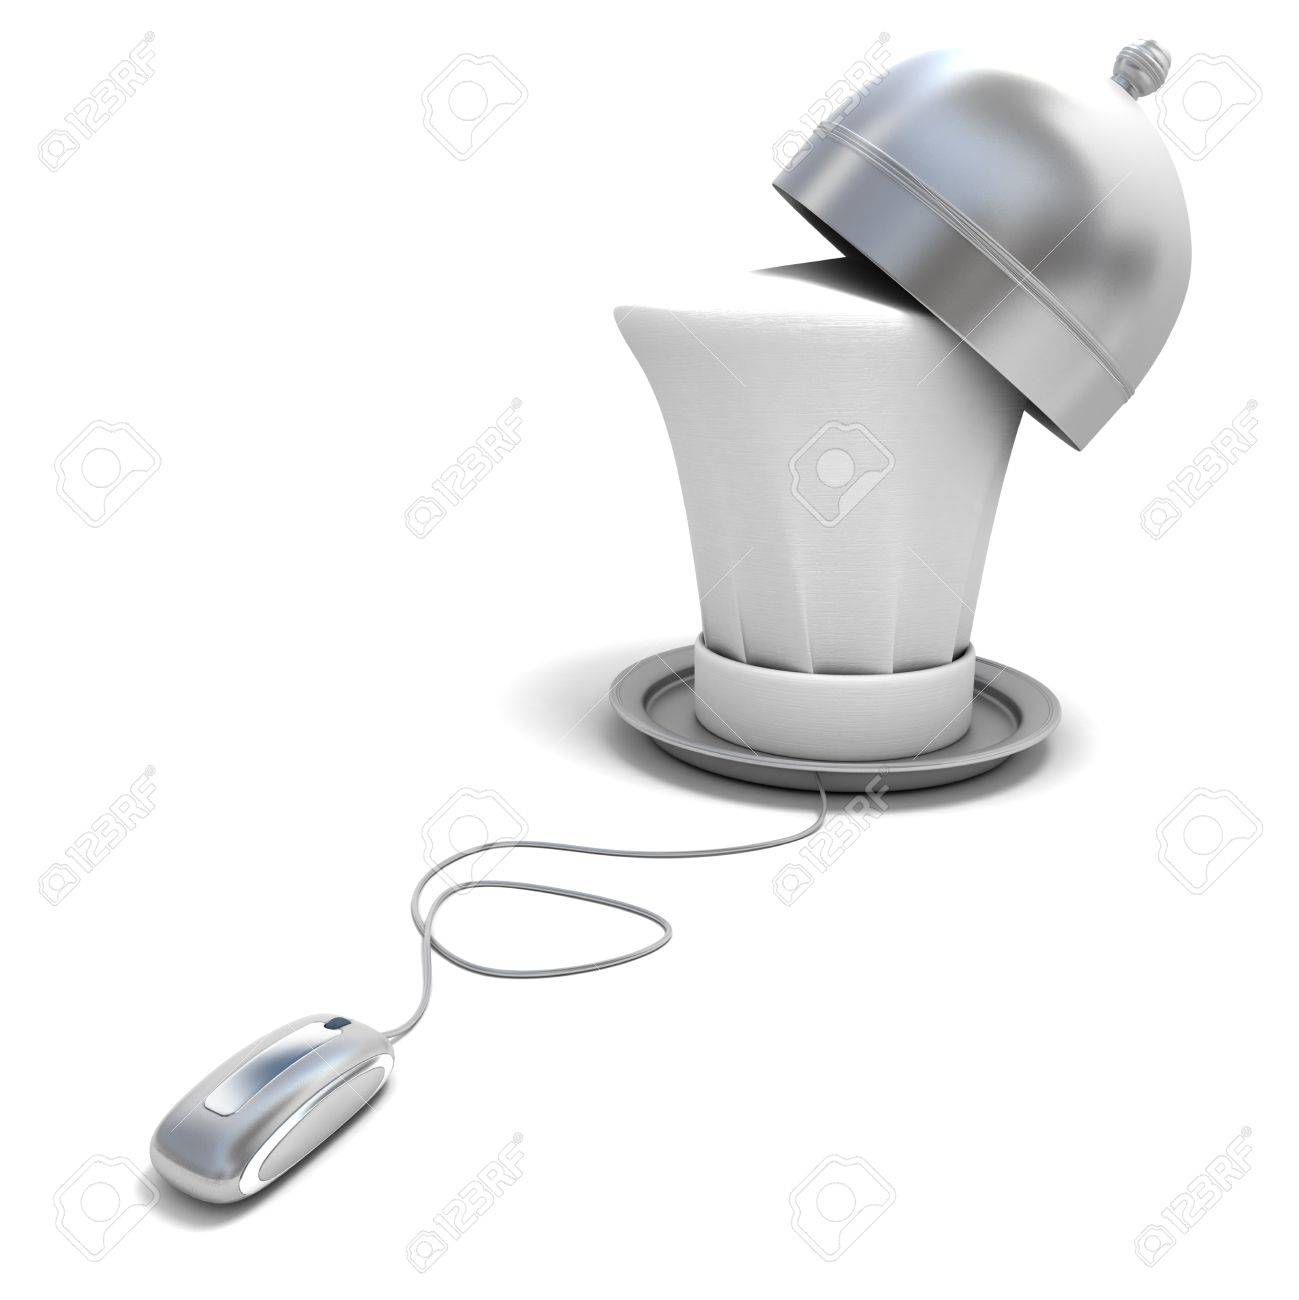 3D rendering of a chef's hat on a platter with a bell connected to a computer mouse Stock Photo - 15905529